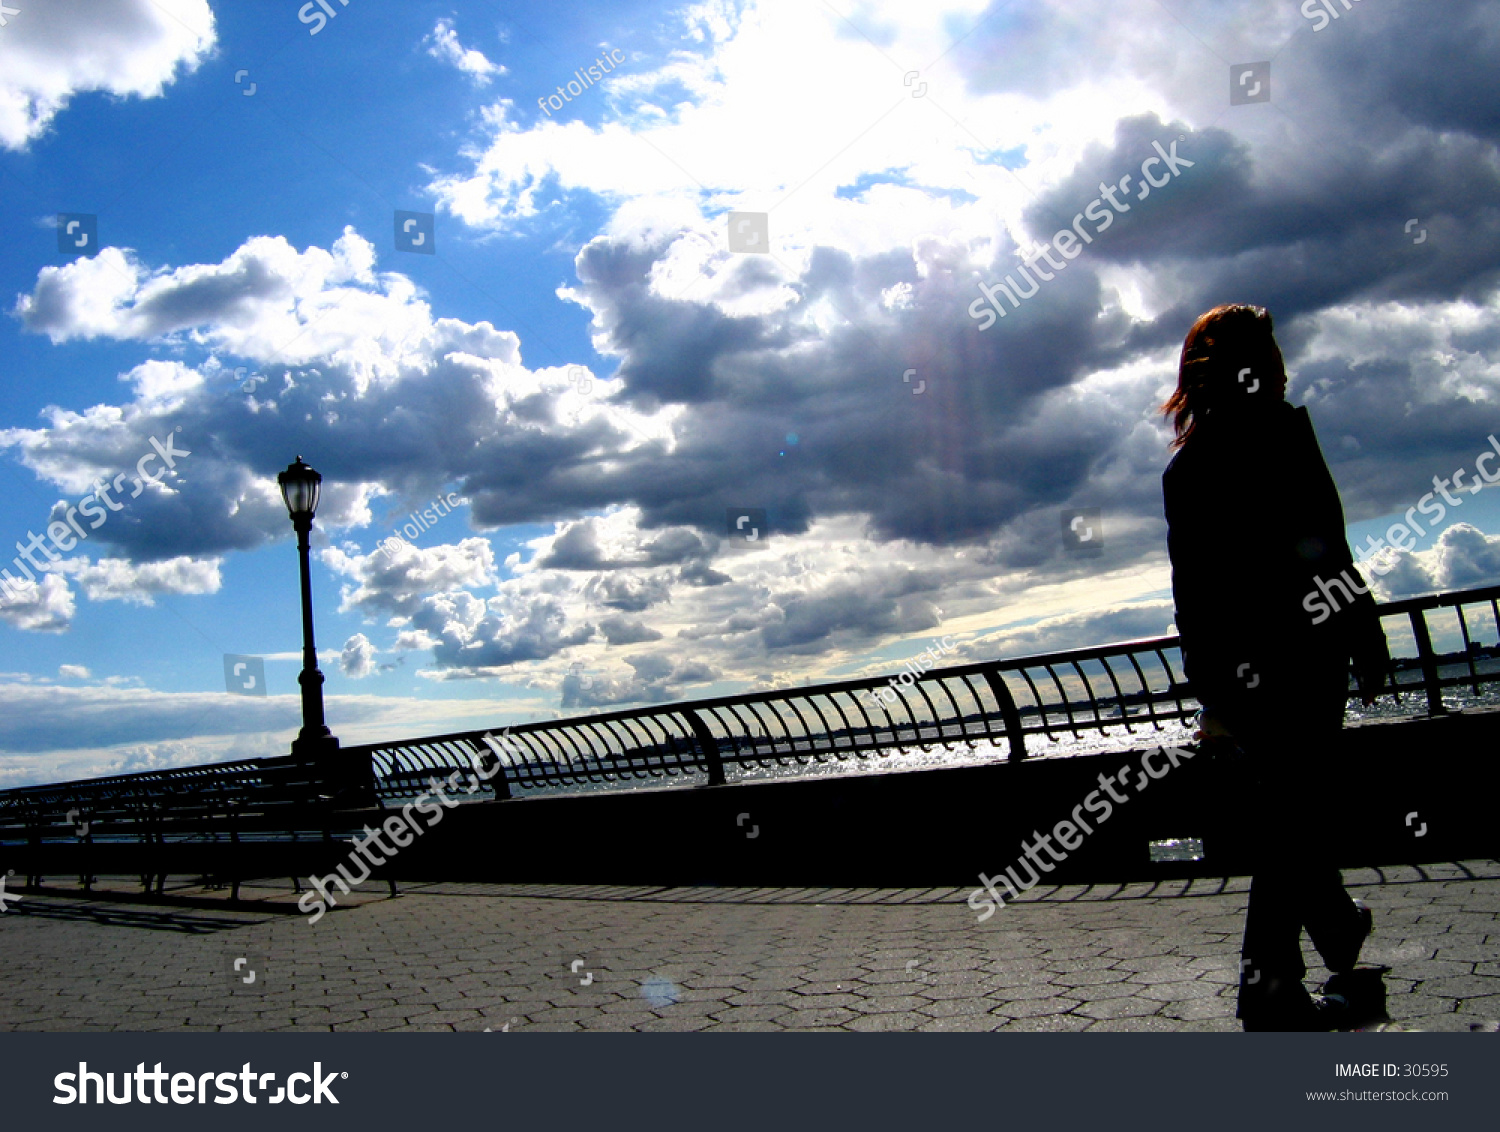 battery park single women Lower manhattan — the investigation continues after two people were struck by gunfire near battery park when a dispute between two men selling tickets in the area monday afternoon escalated and became violent, with one of them opening fire in an area packed with professionals, students and to.